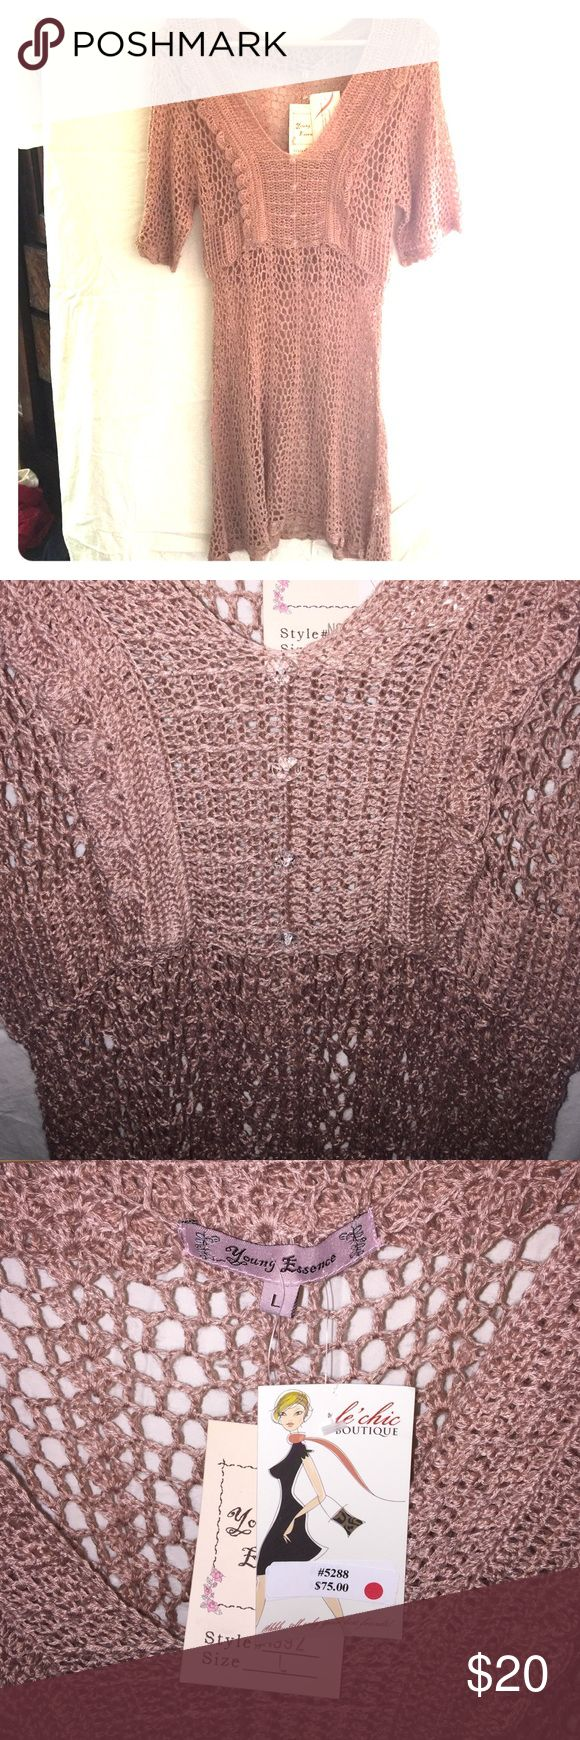 Crochet Dress NWTS Large Boutique This is a Young Essence brand full crochet dress, size Large. Free People style dress. This runs a bit small, will fit medium or petite large. New with tags, retail $75. Offers welcome! Young Essence Dresses Midi